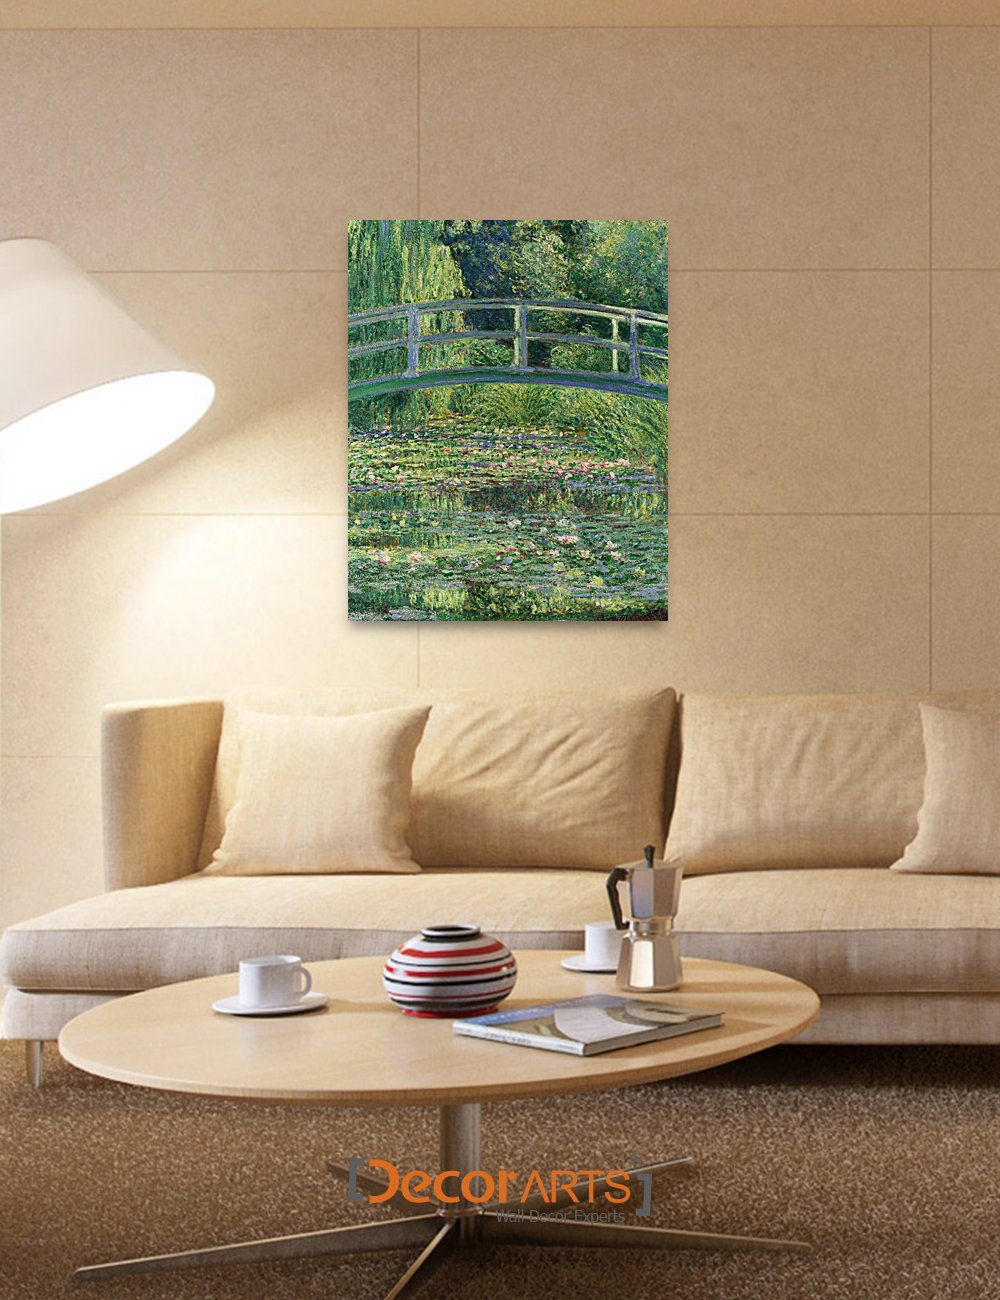 DECORARTS Japanese Water Lily Painting Reproduction Image 2